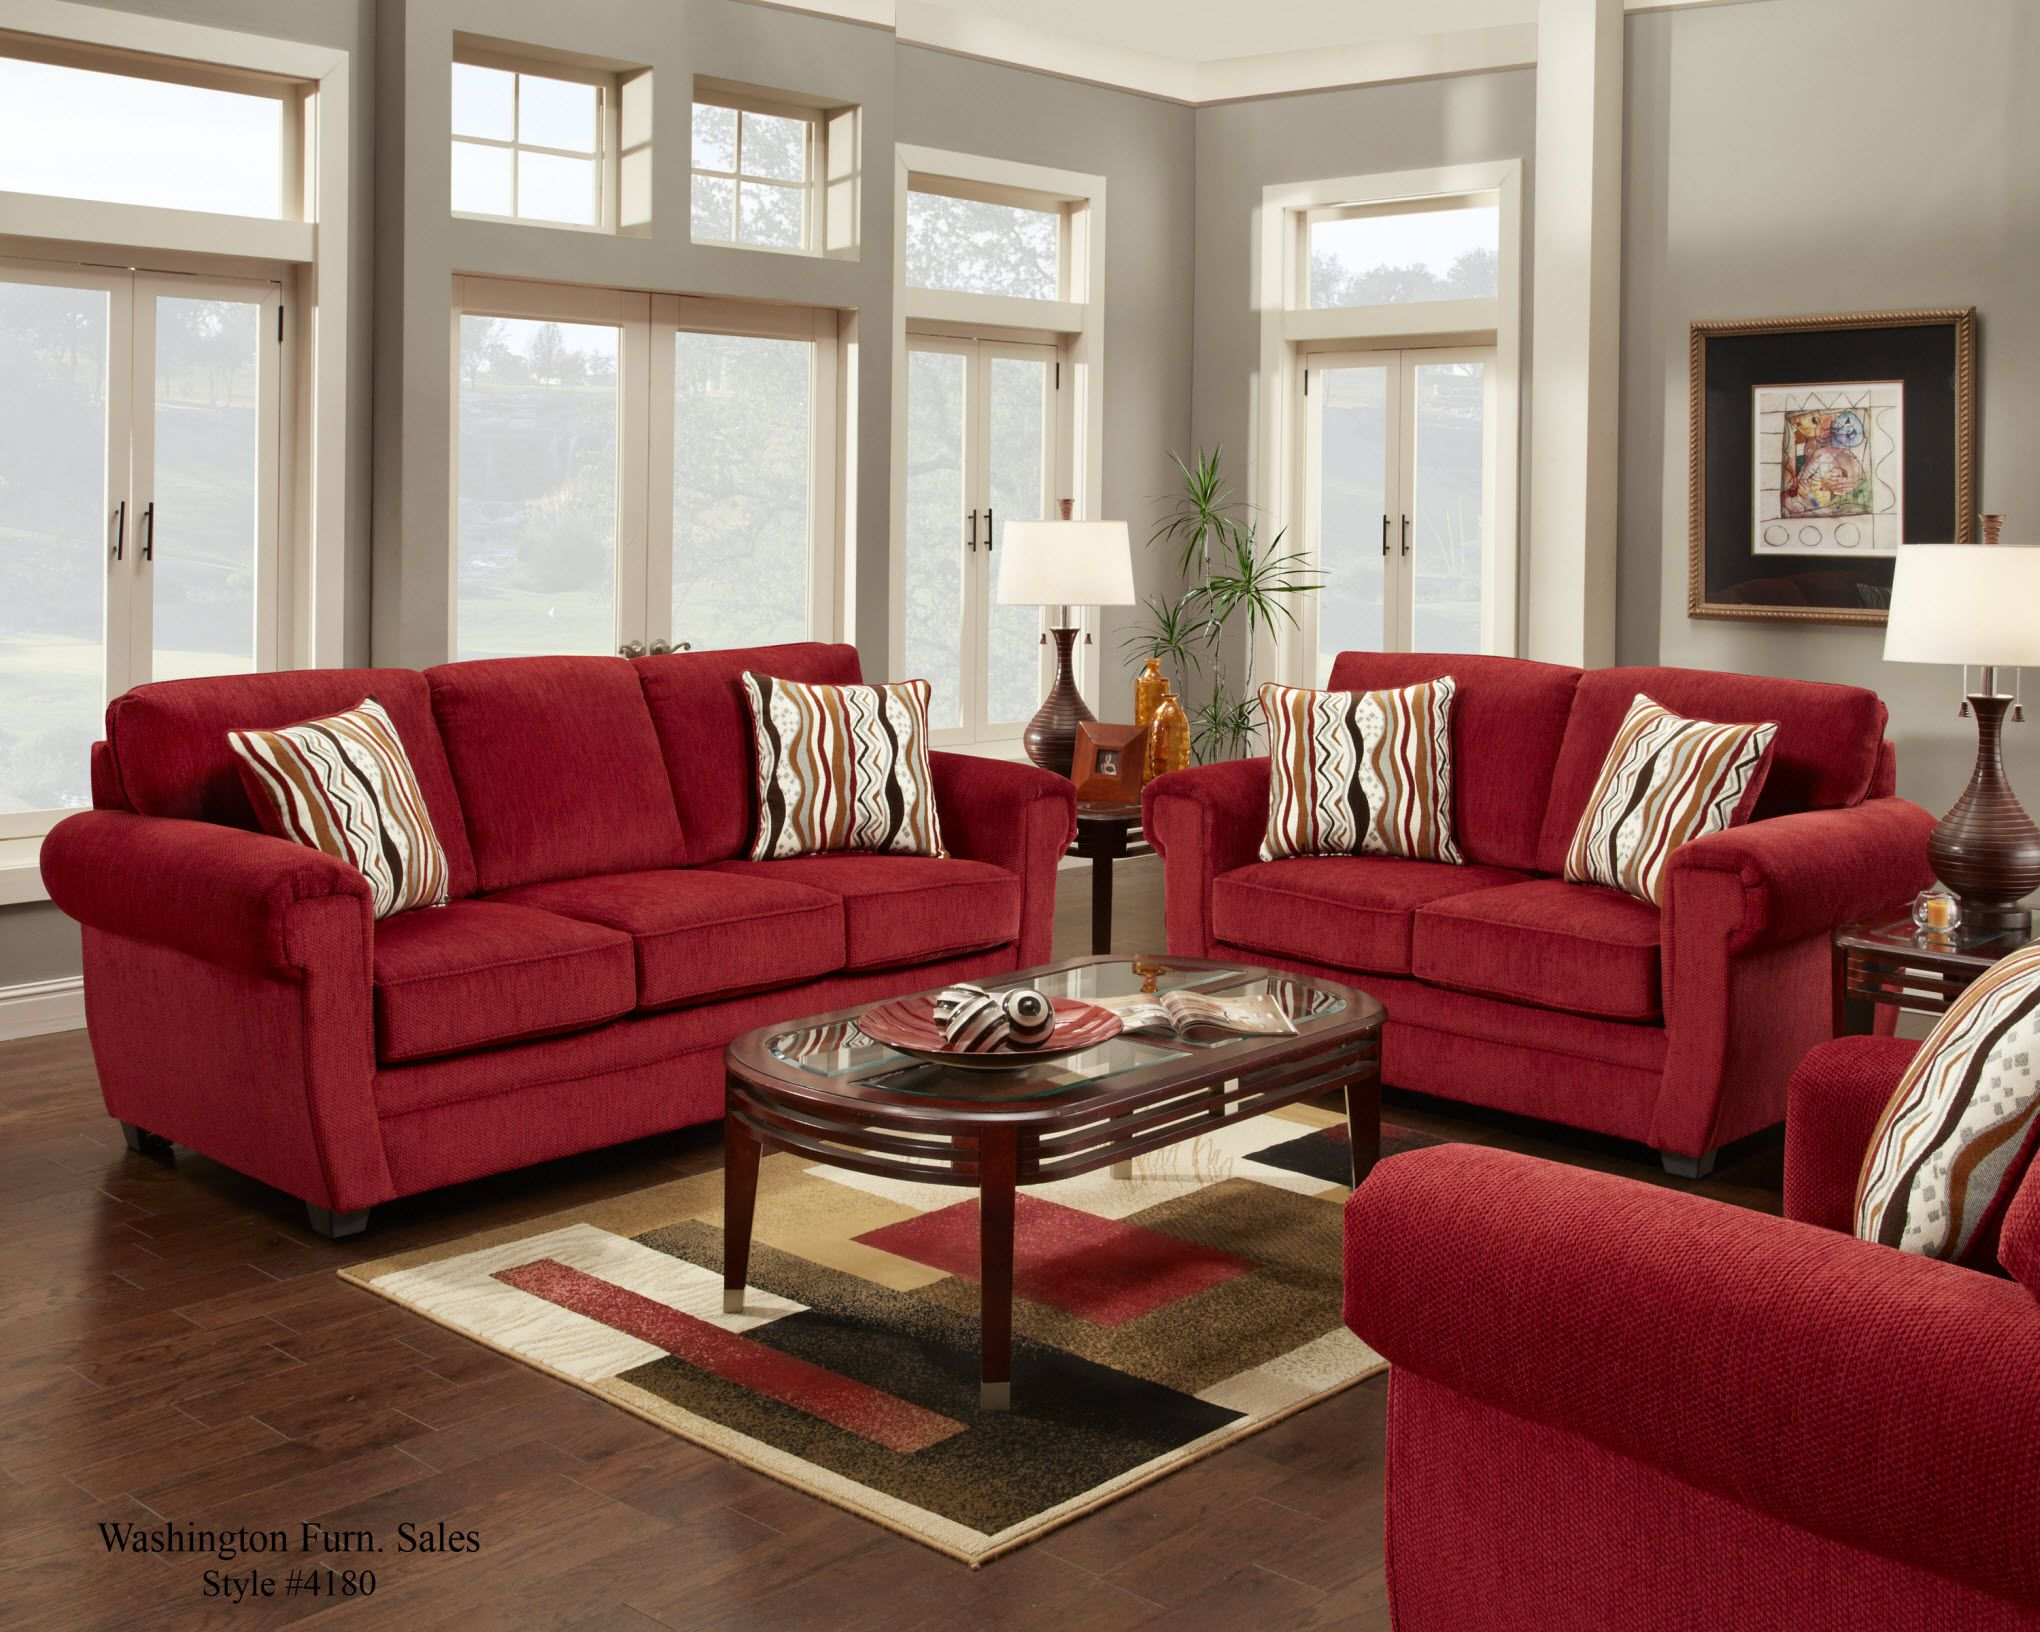 4180 washington samson red sofa and loveseat @ www.furnitureurban